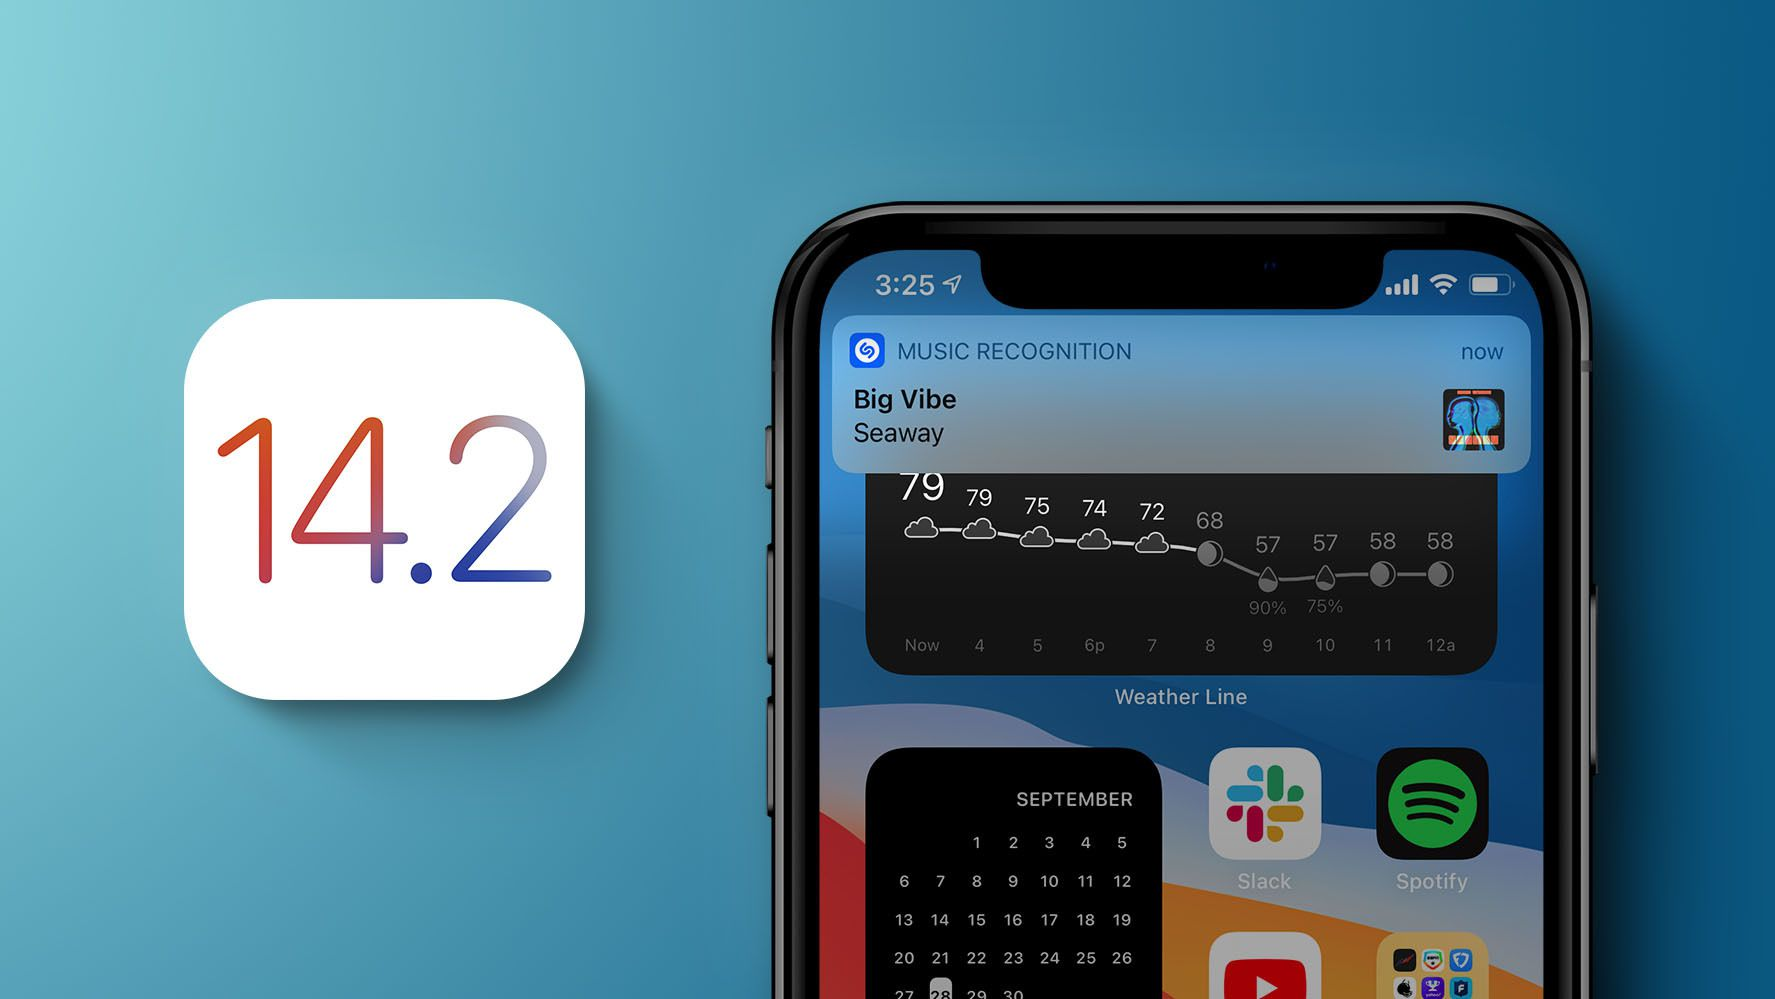 photo of Hands-On With iOS 14.2's New Shazam Music Recognition Toggle in Control Center image